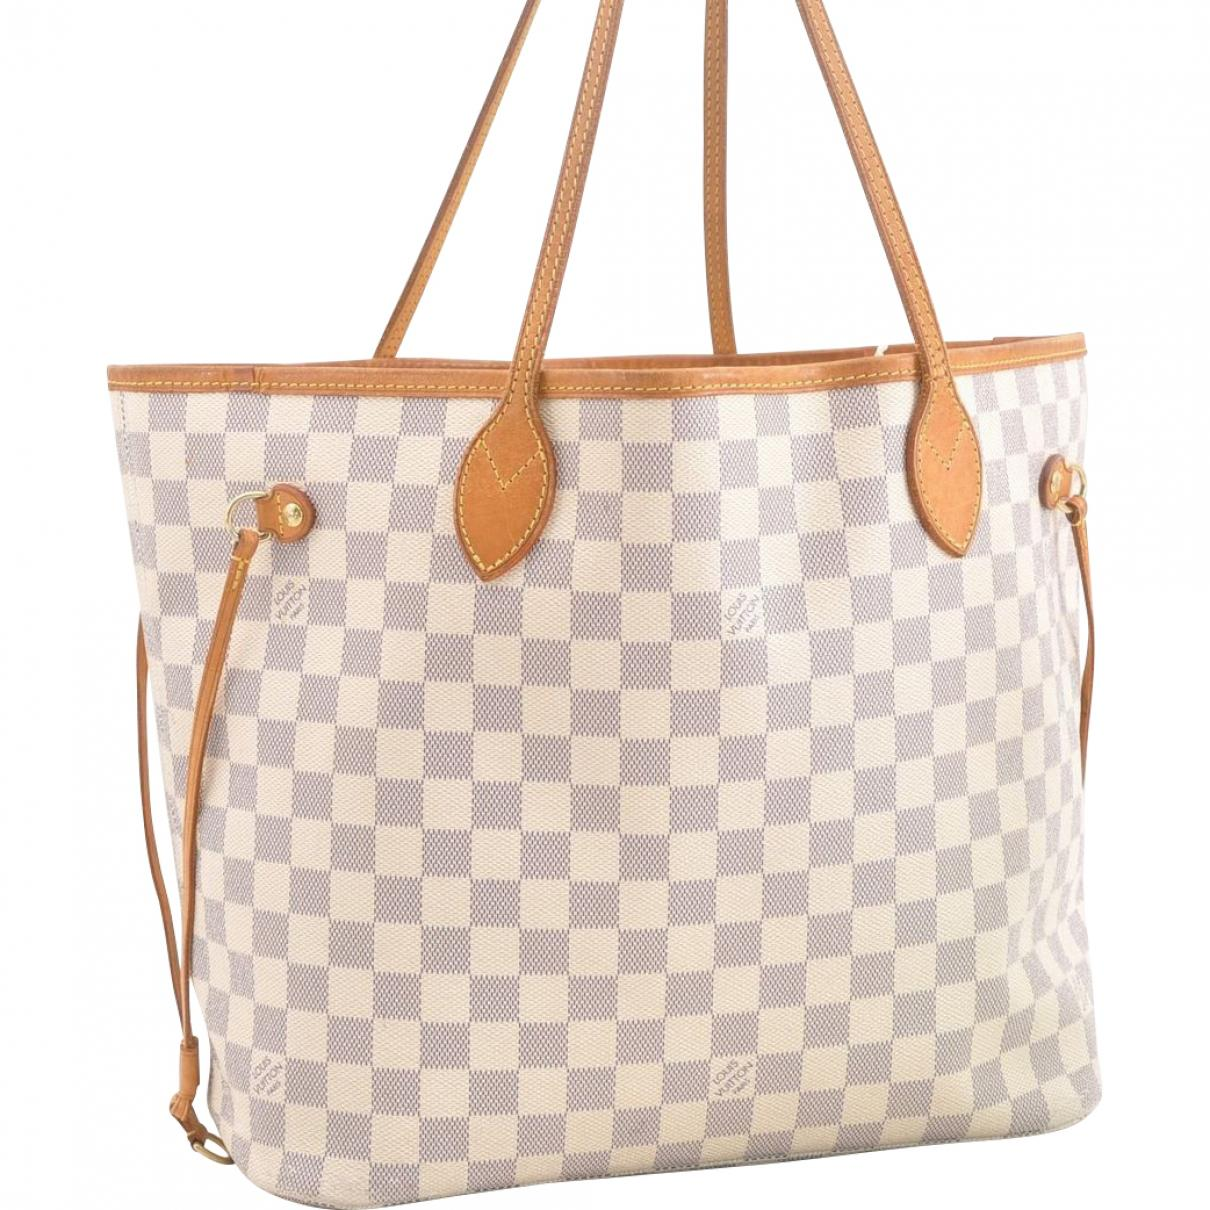 cce09e4a91ac Louis Vuitton Neverfull Cloth Handbag in White - Save 35% - Lyst